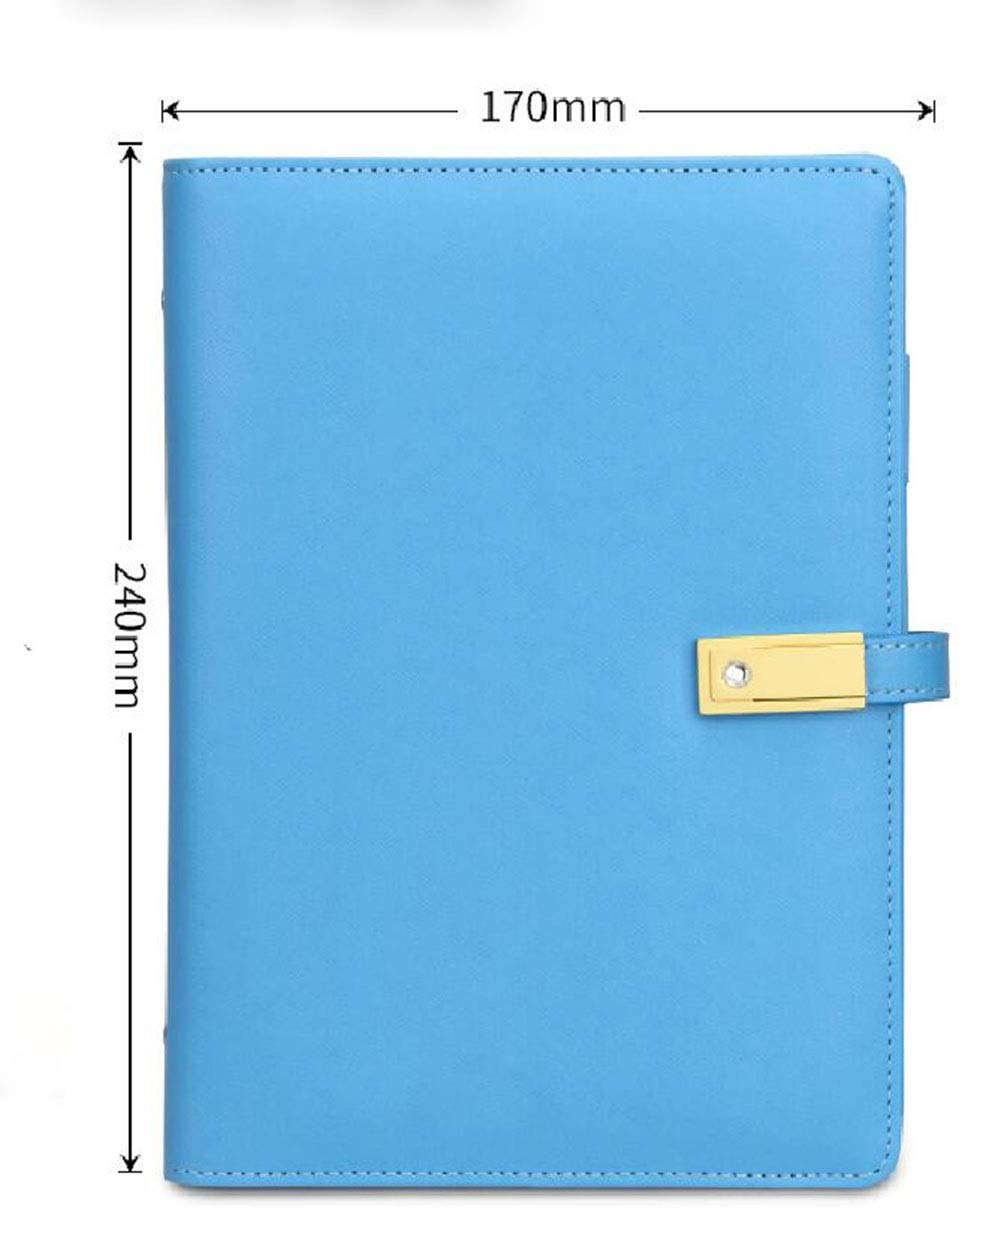 5 and 1 Creative Office A5 Loose-Leaf Stationery Multi-Function Notes Hand bookA4 Folder for Individuals, Schools, Colleges, Offices, Professionals, Businesses (Color : Blue)